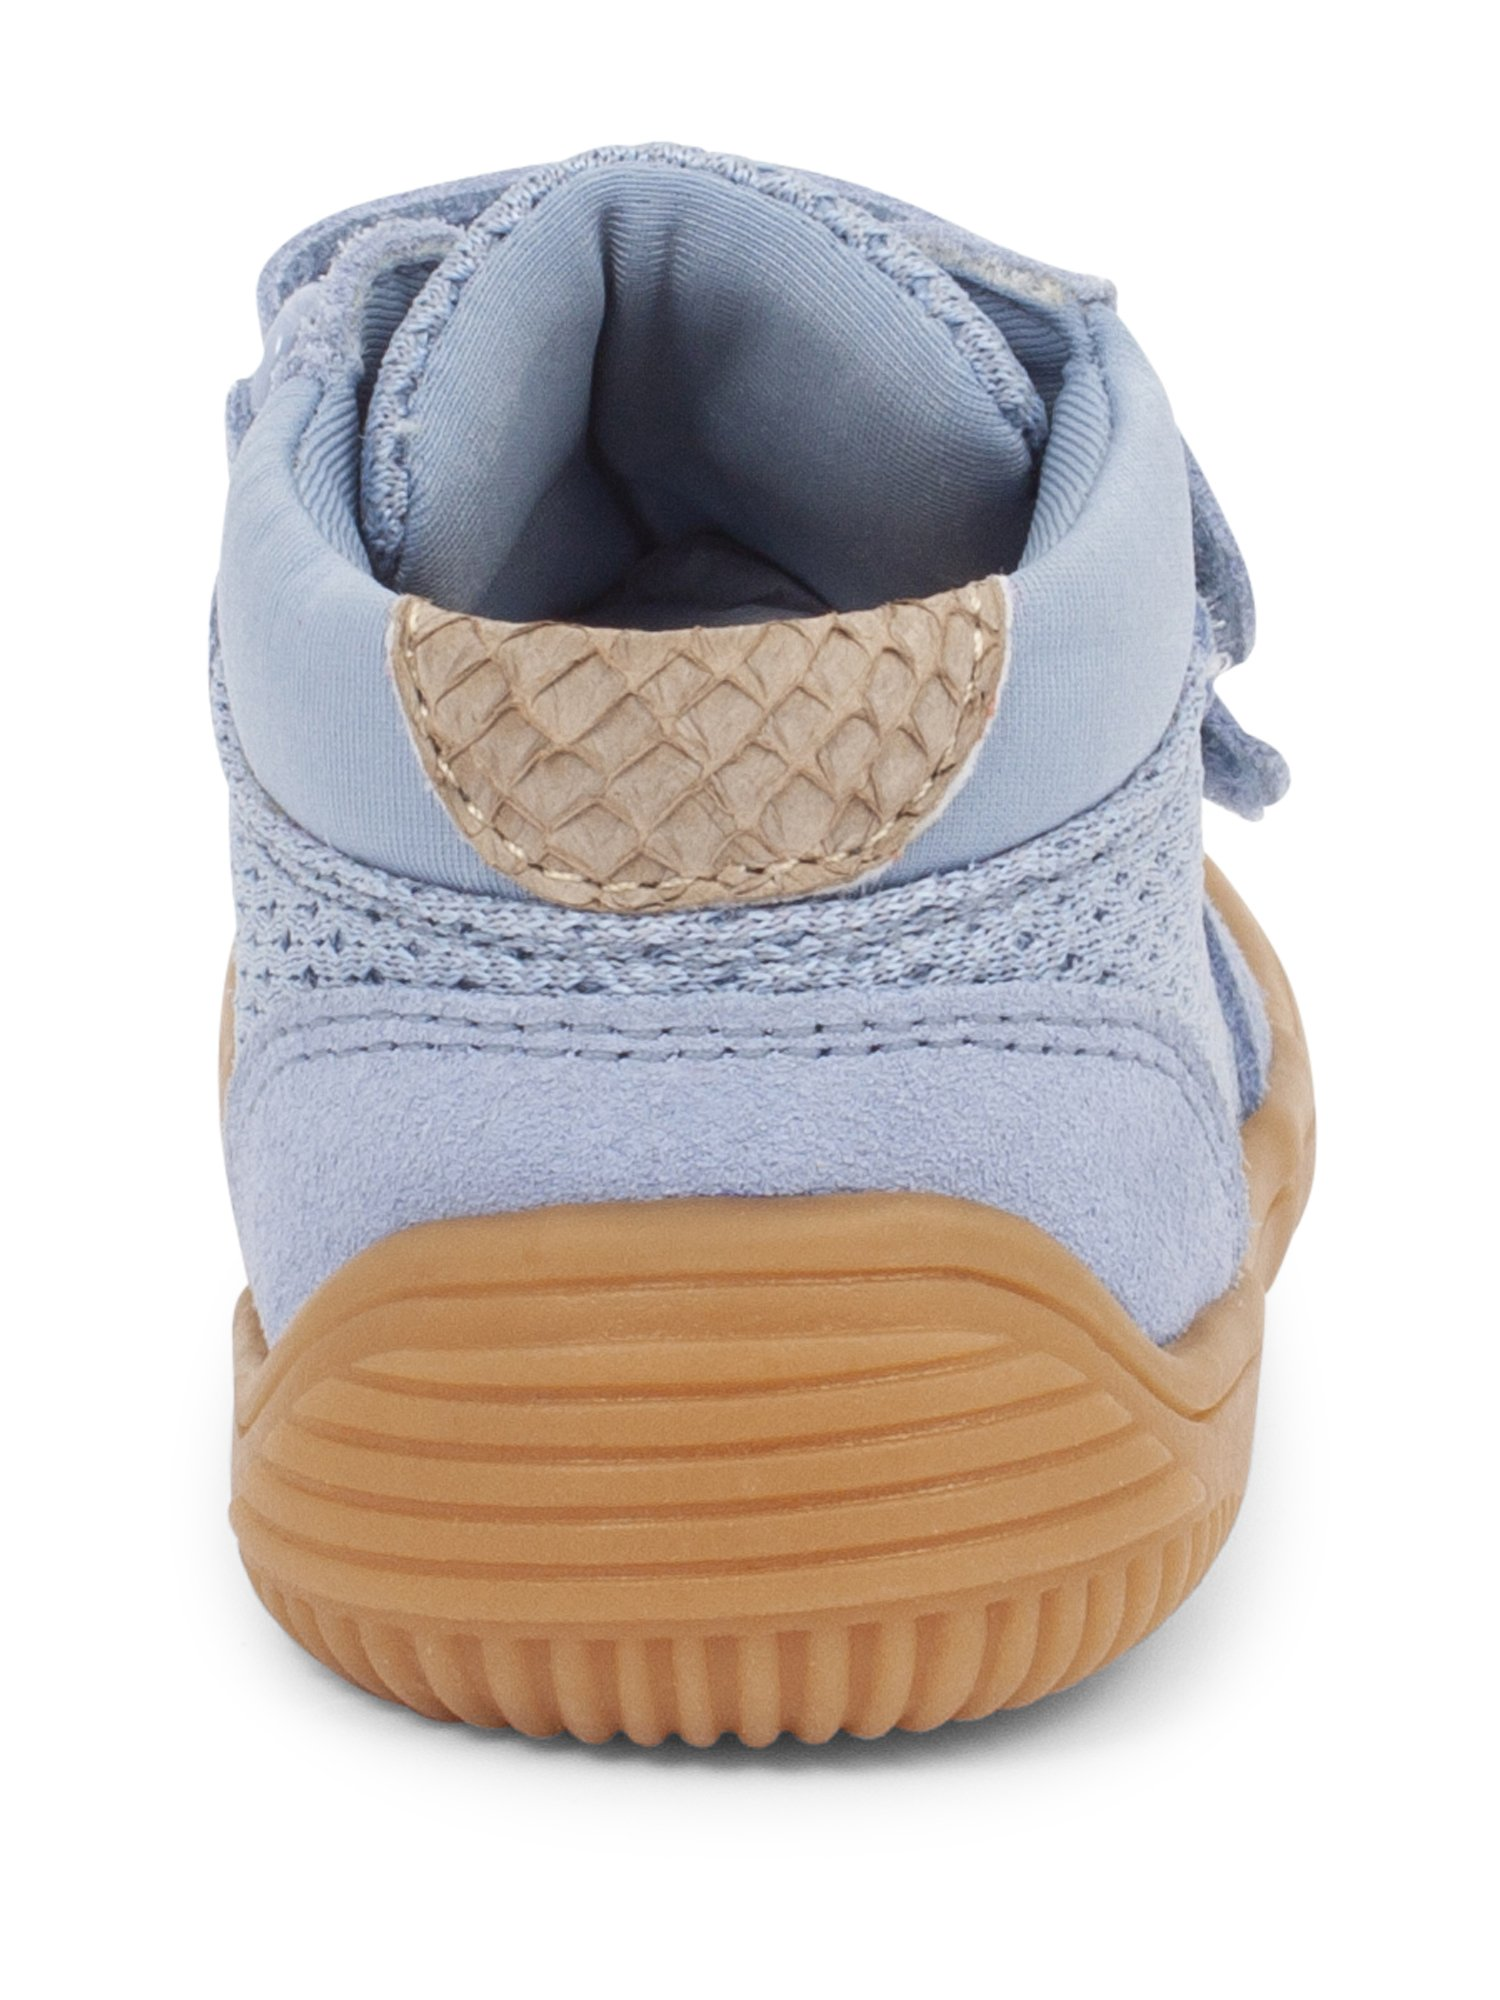 Kids TRISTAN BABY - Baby shoes